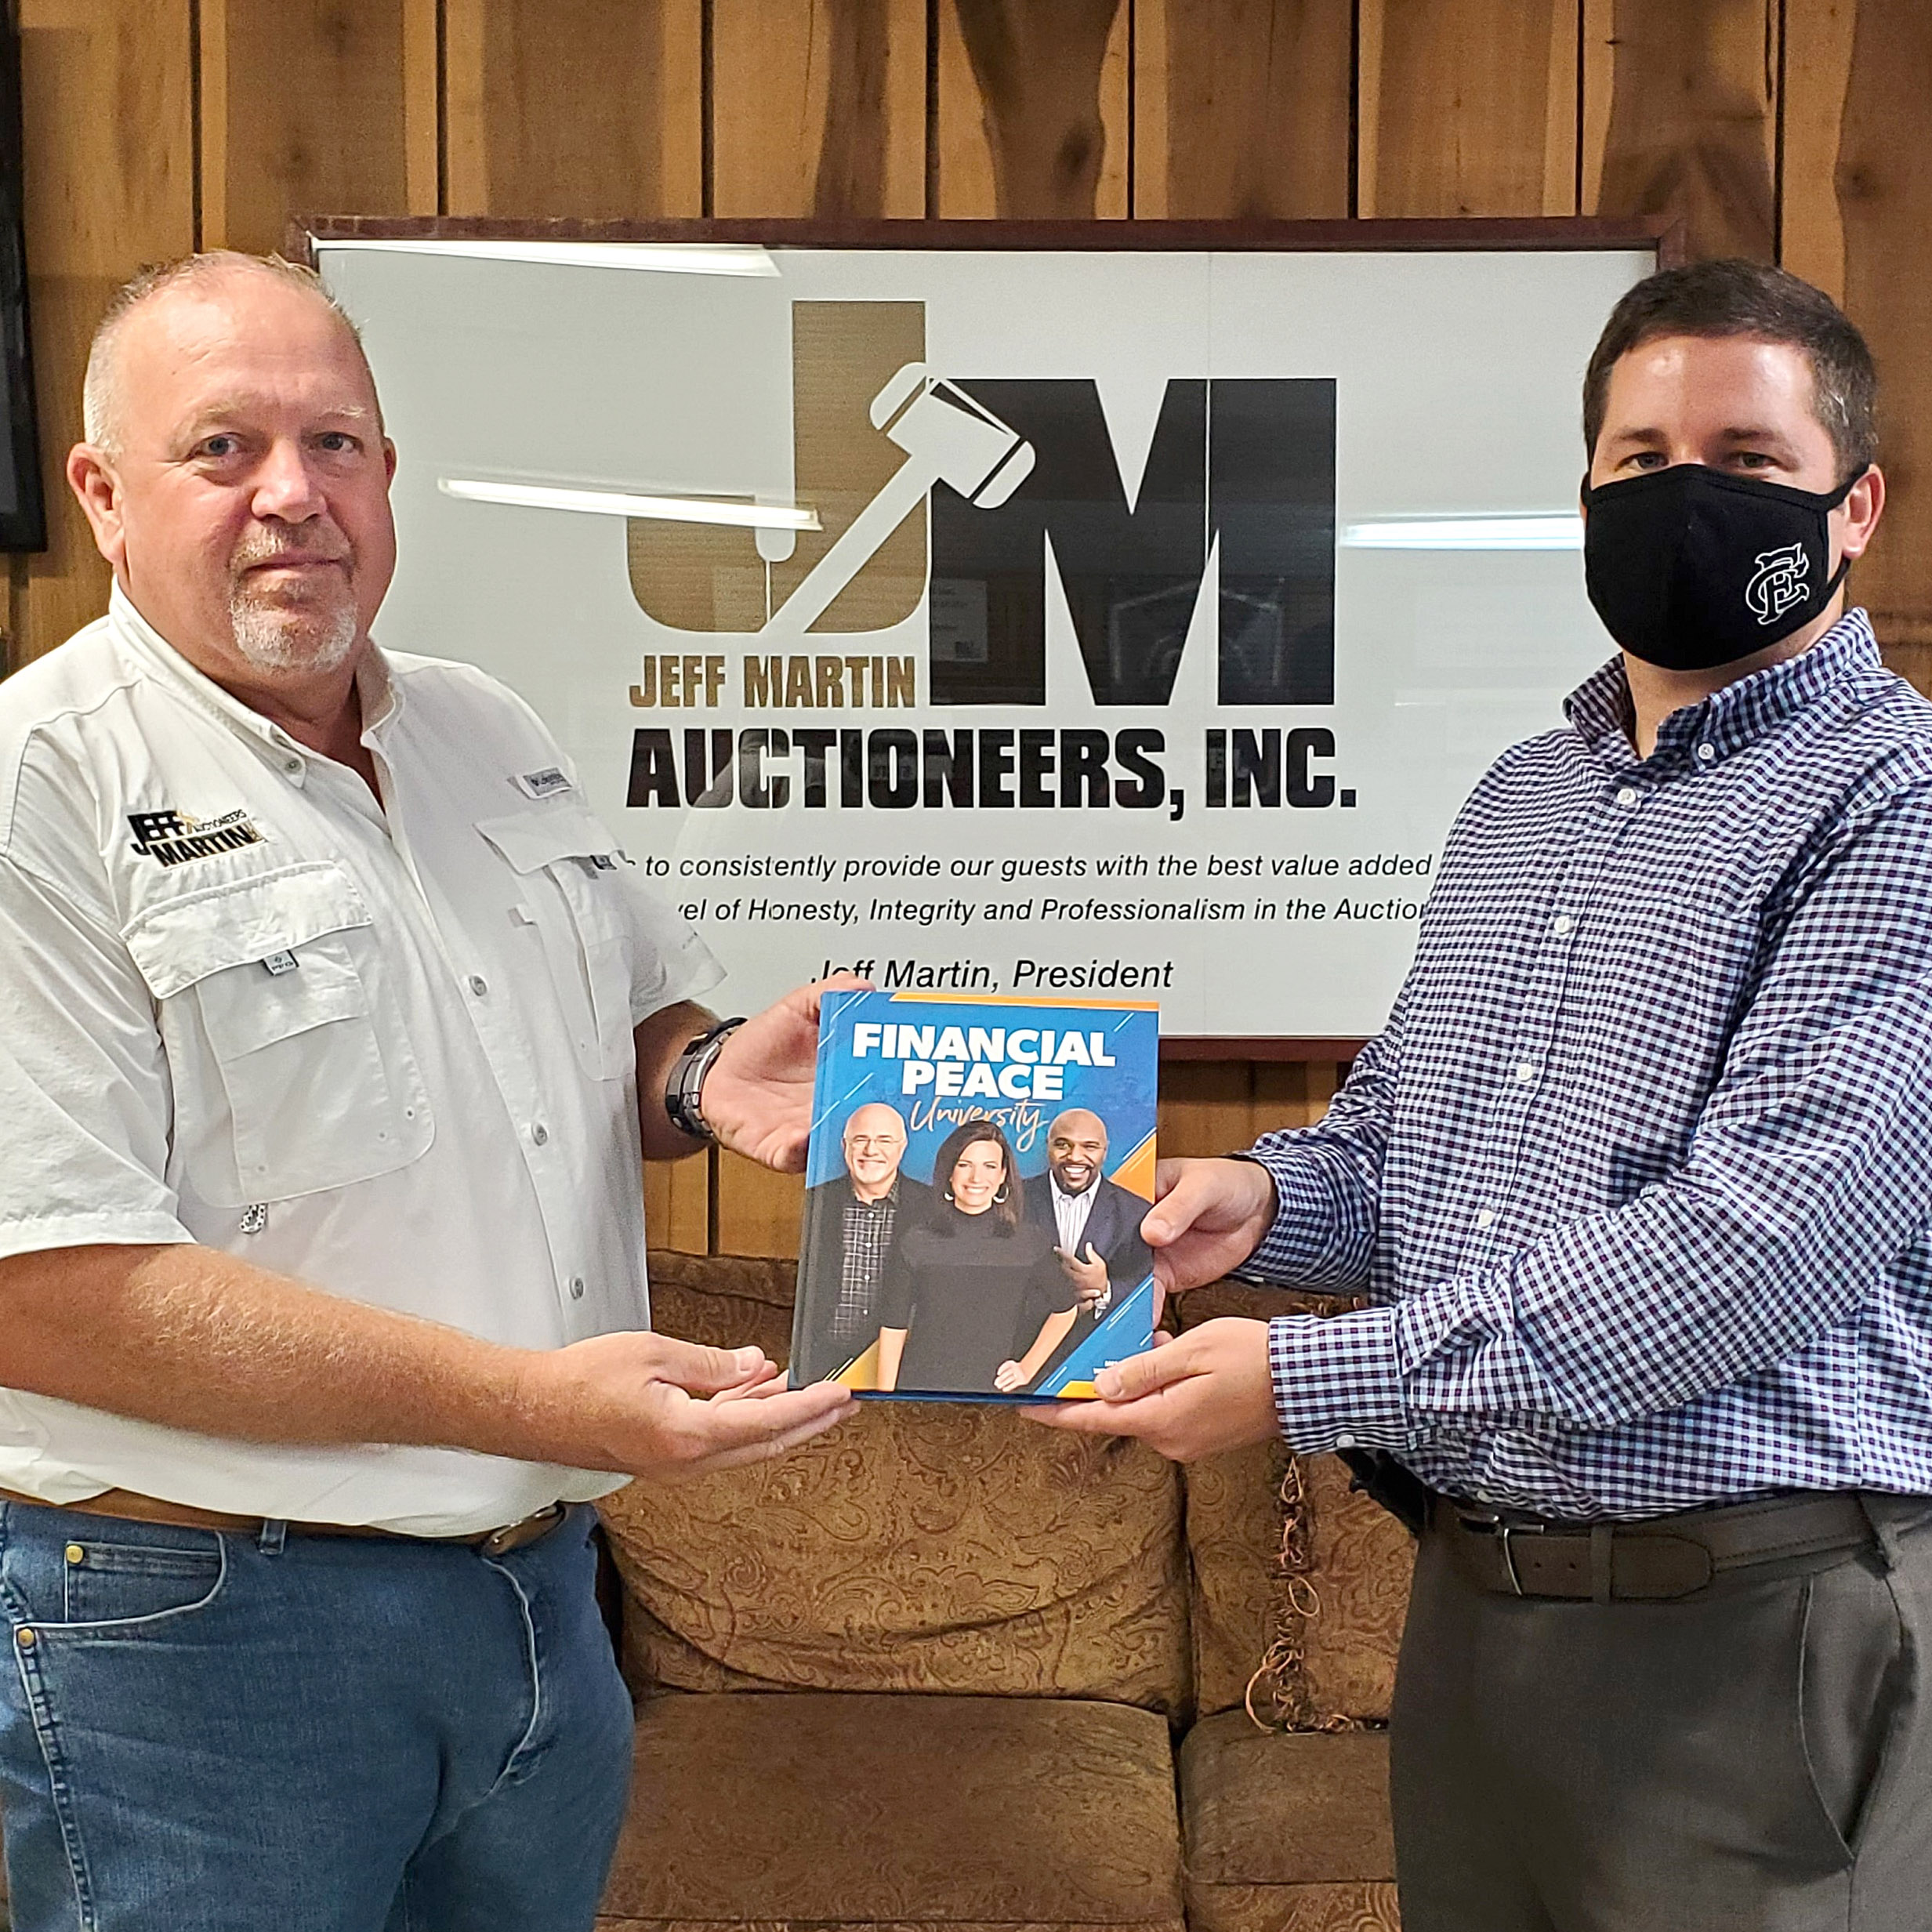 FCAHS Receives Financial Tools From Auctioneer